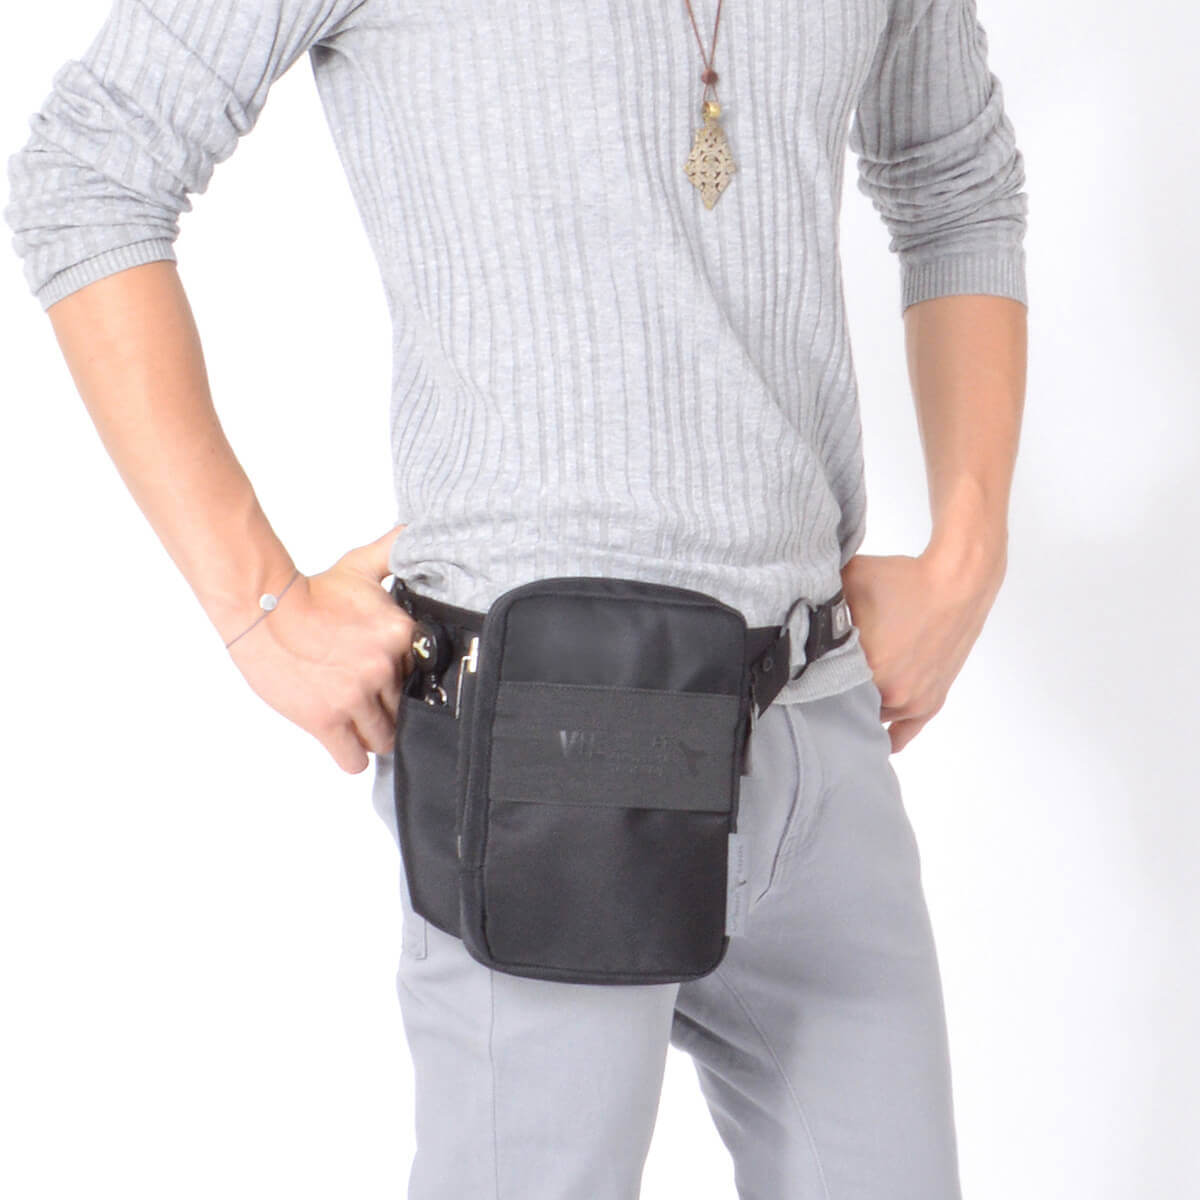 2097047a85 tablet fanny pack Waist holster bag for tablet and smartphones URBAN TOOL ®  case holster